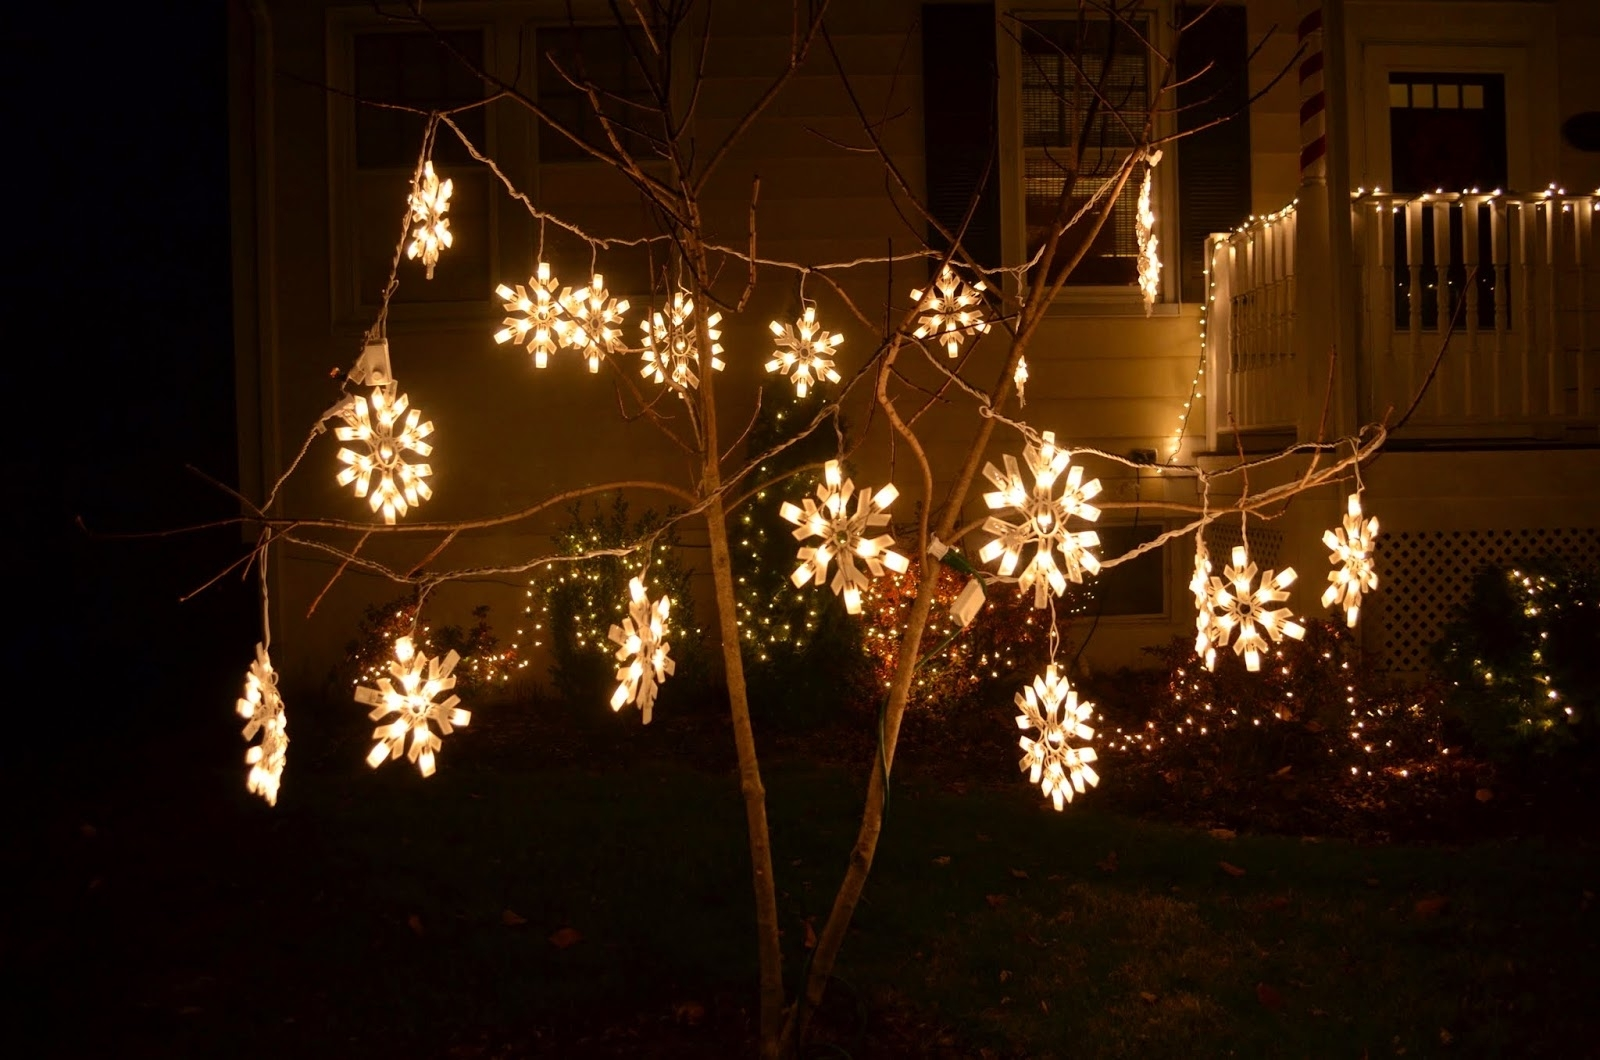 Diy : Home Decor Lighting Outdoor Lights And How Use String Trees Inside Trendy Outdoor Low Voltage Hanging Tree Lights (View 15 of 20)